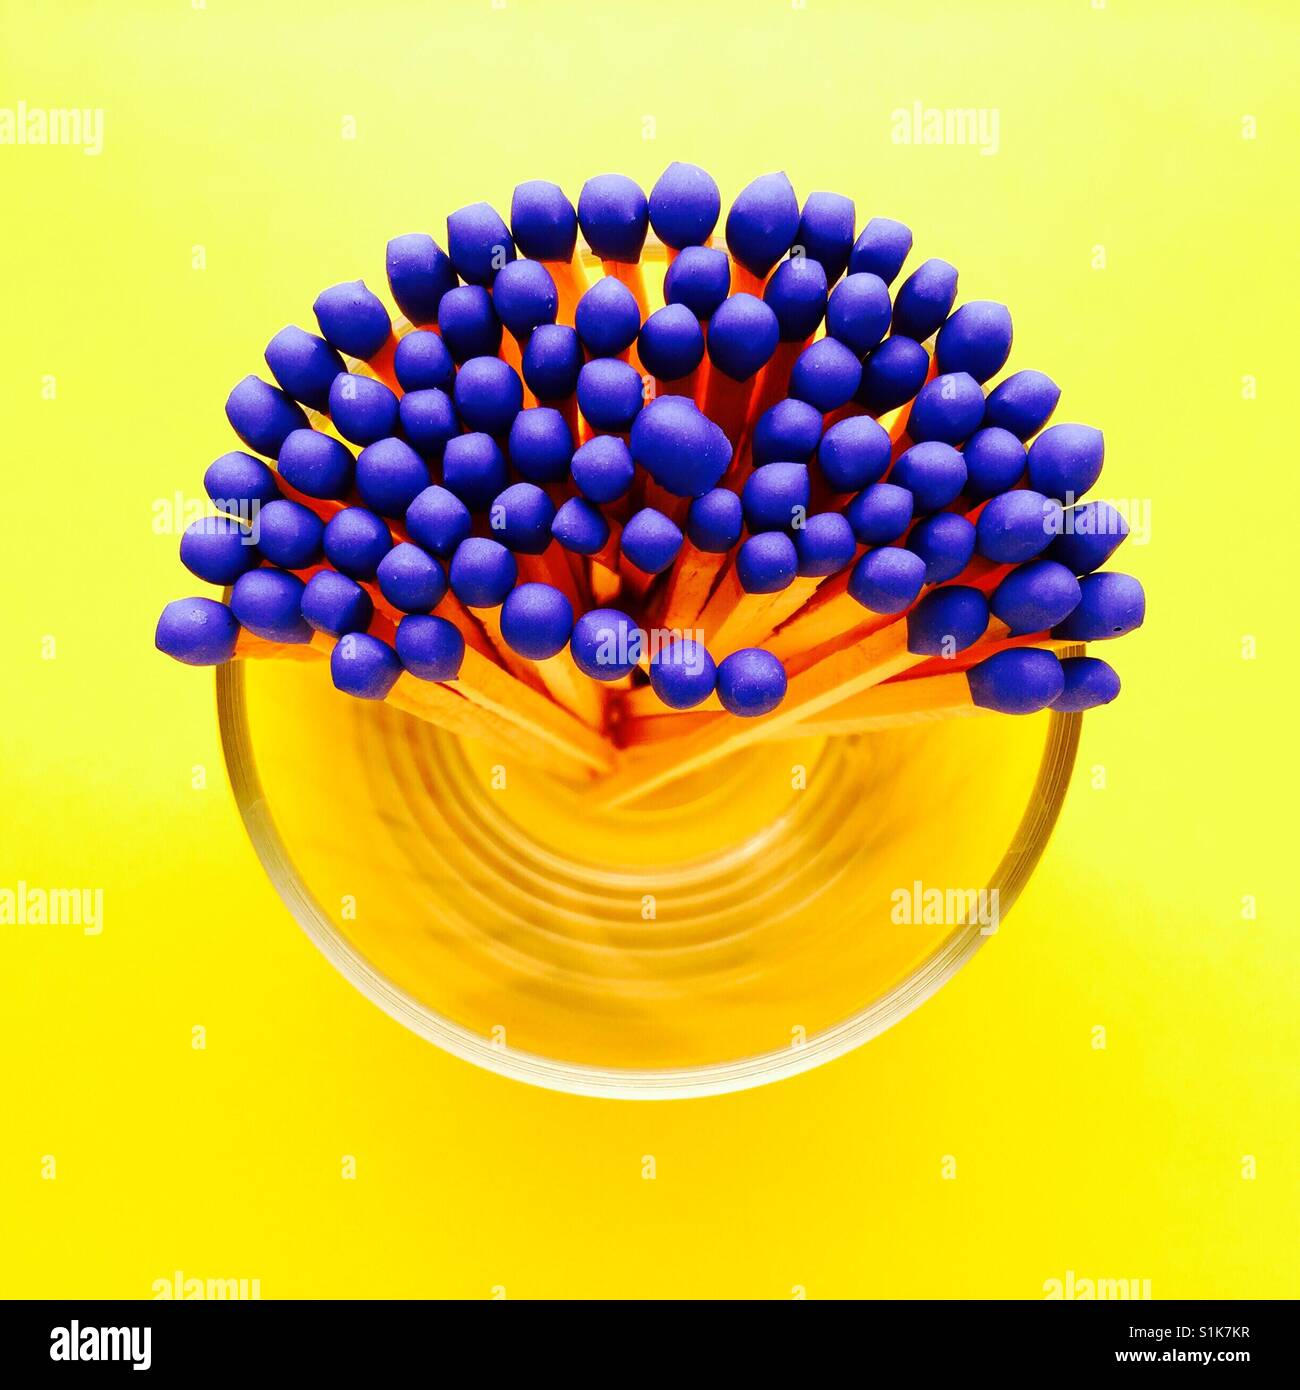 An overhead shot of a glass container half full of blue tipped matchsticks - Stock Image